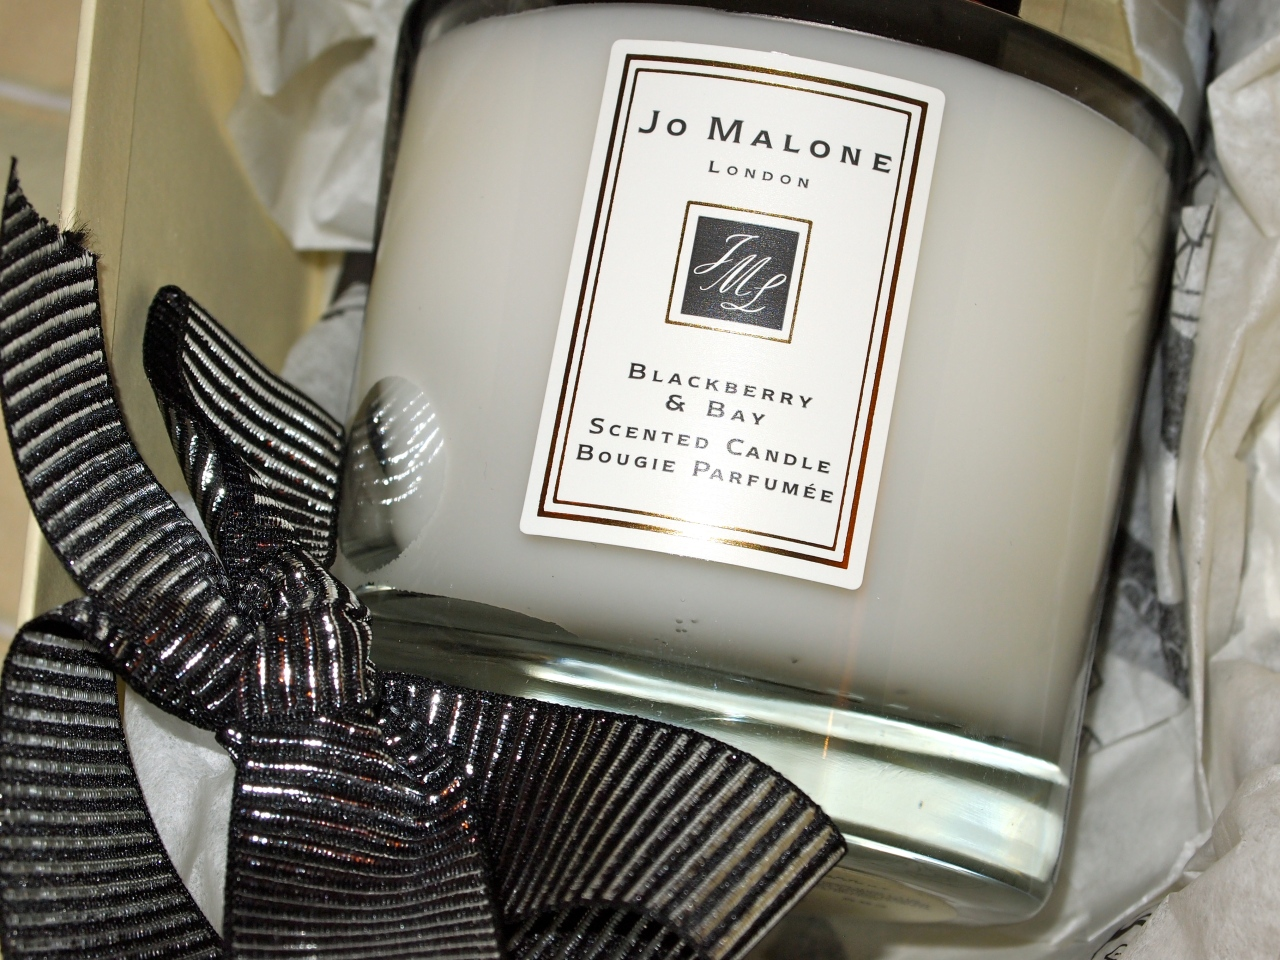 * jo malone blackberry & bay home candle £38 *